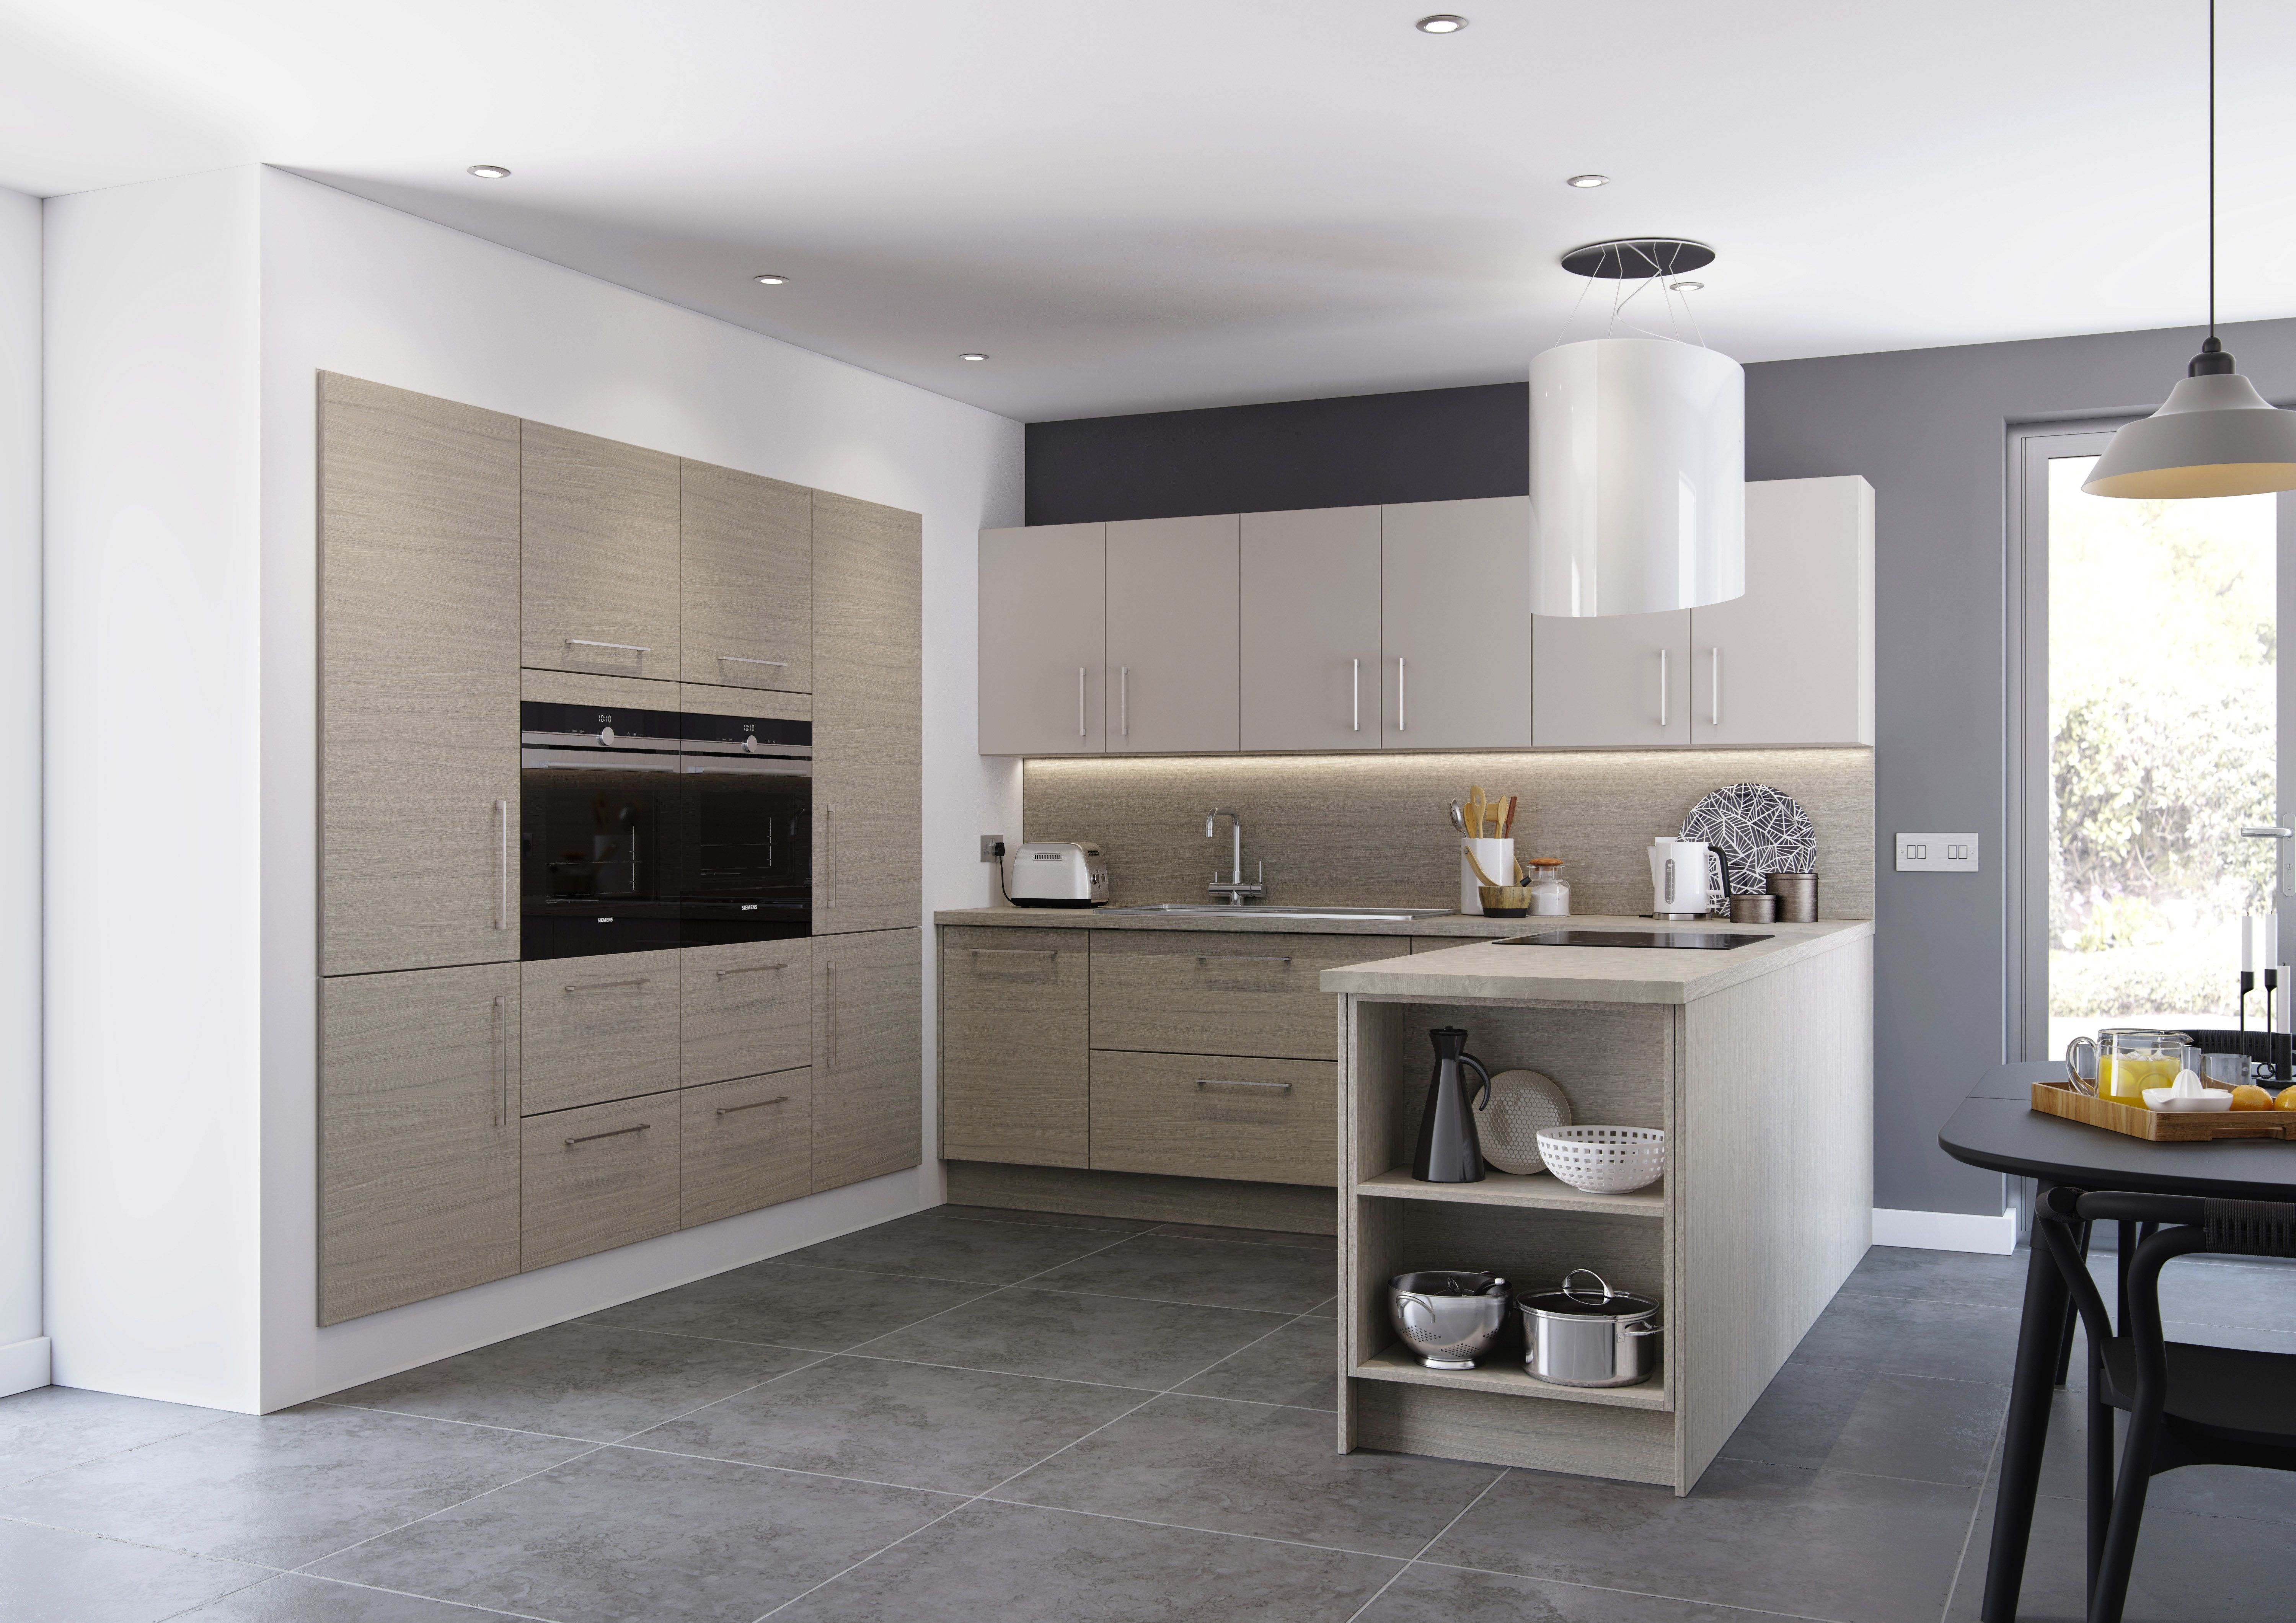 Designing a kitchen doesn't have to be difficult or long